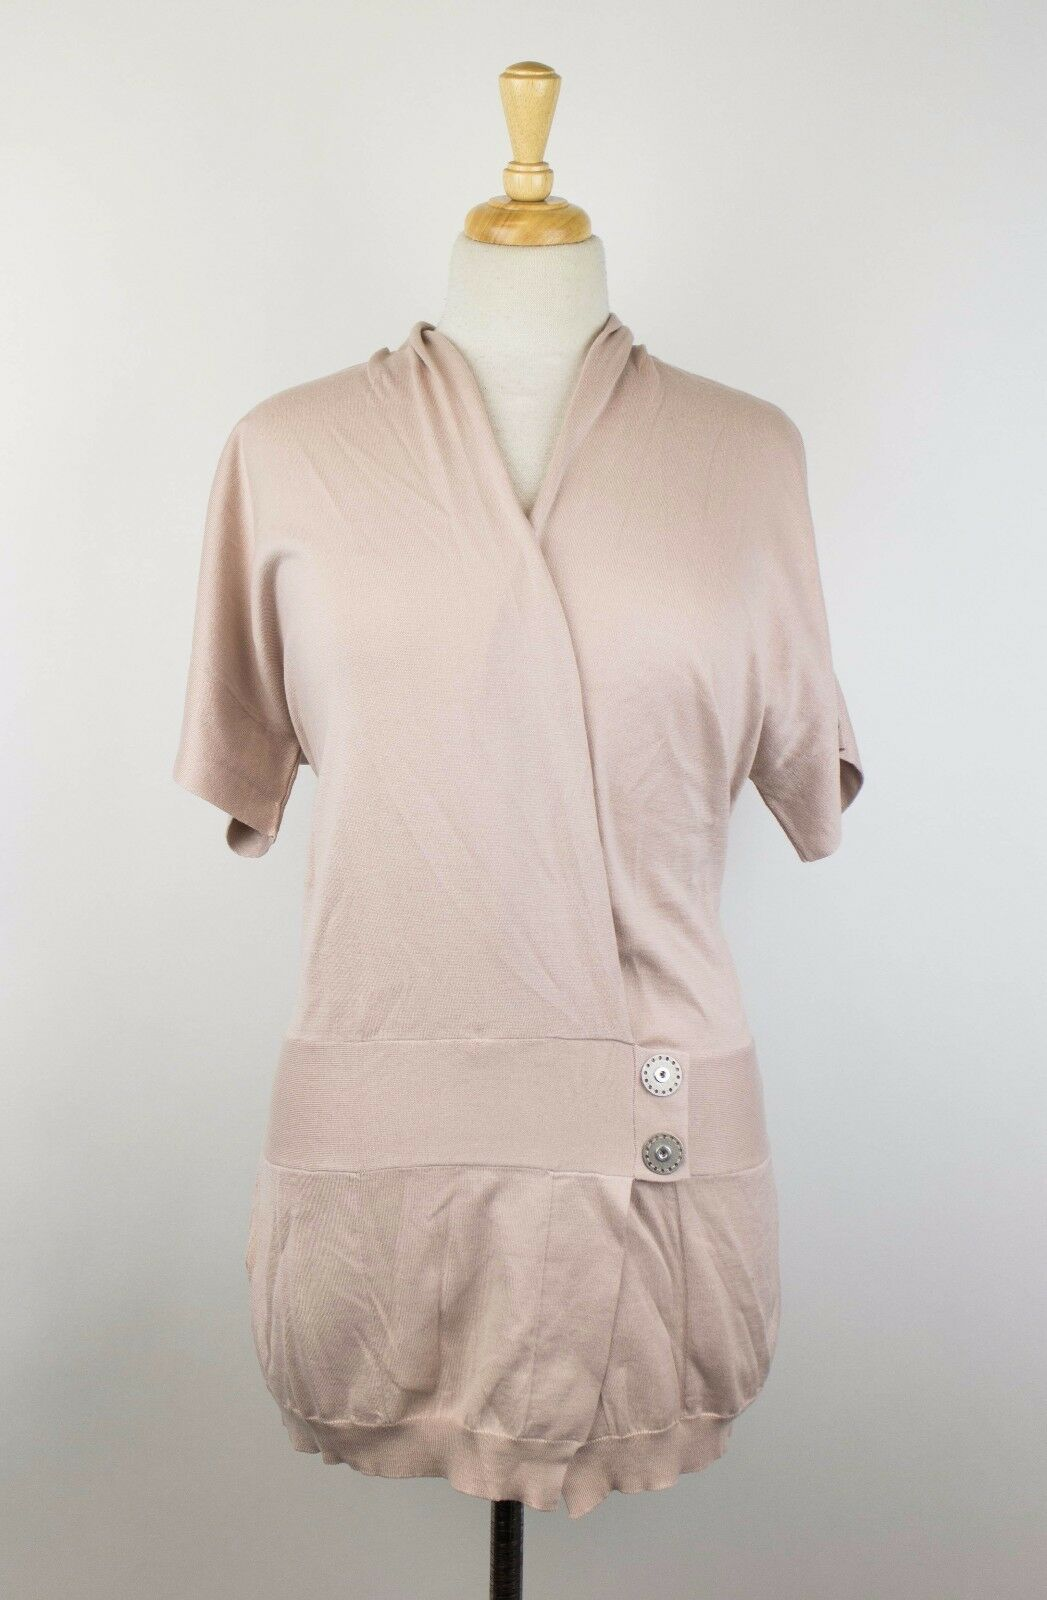 NWT BRUNELLO CUCINELLI Pink Cotton Short Sleeve Cardigan Sweater Size L